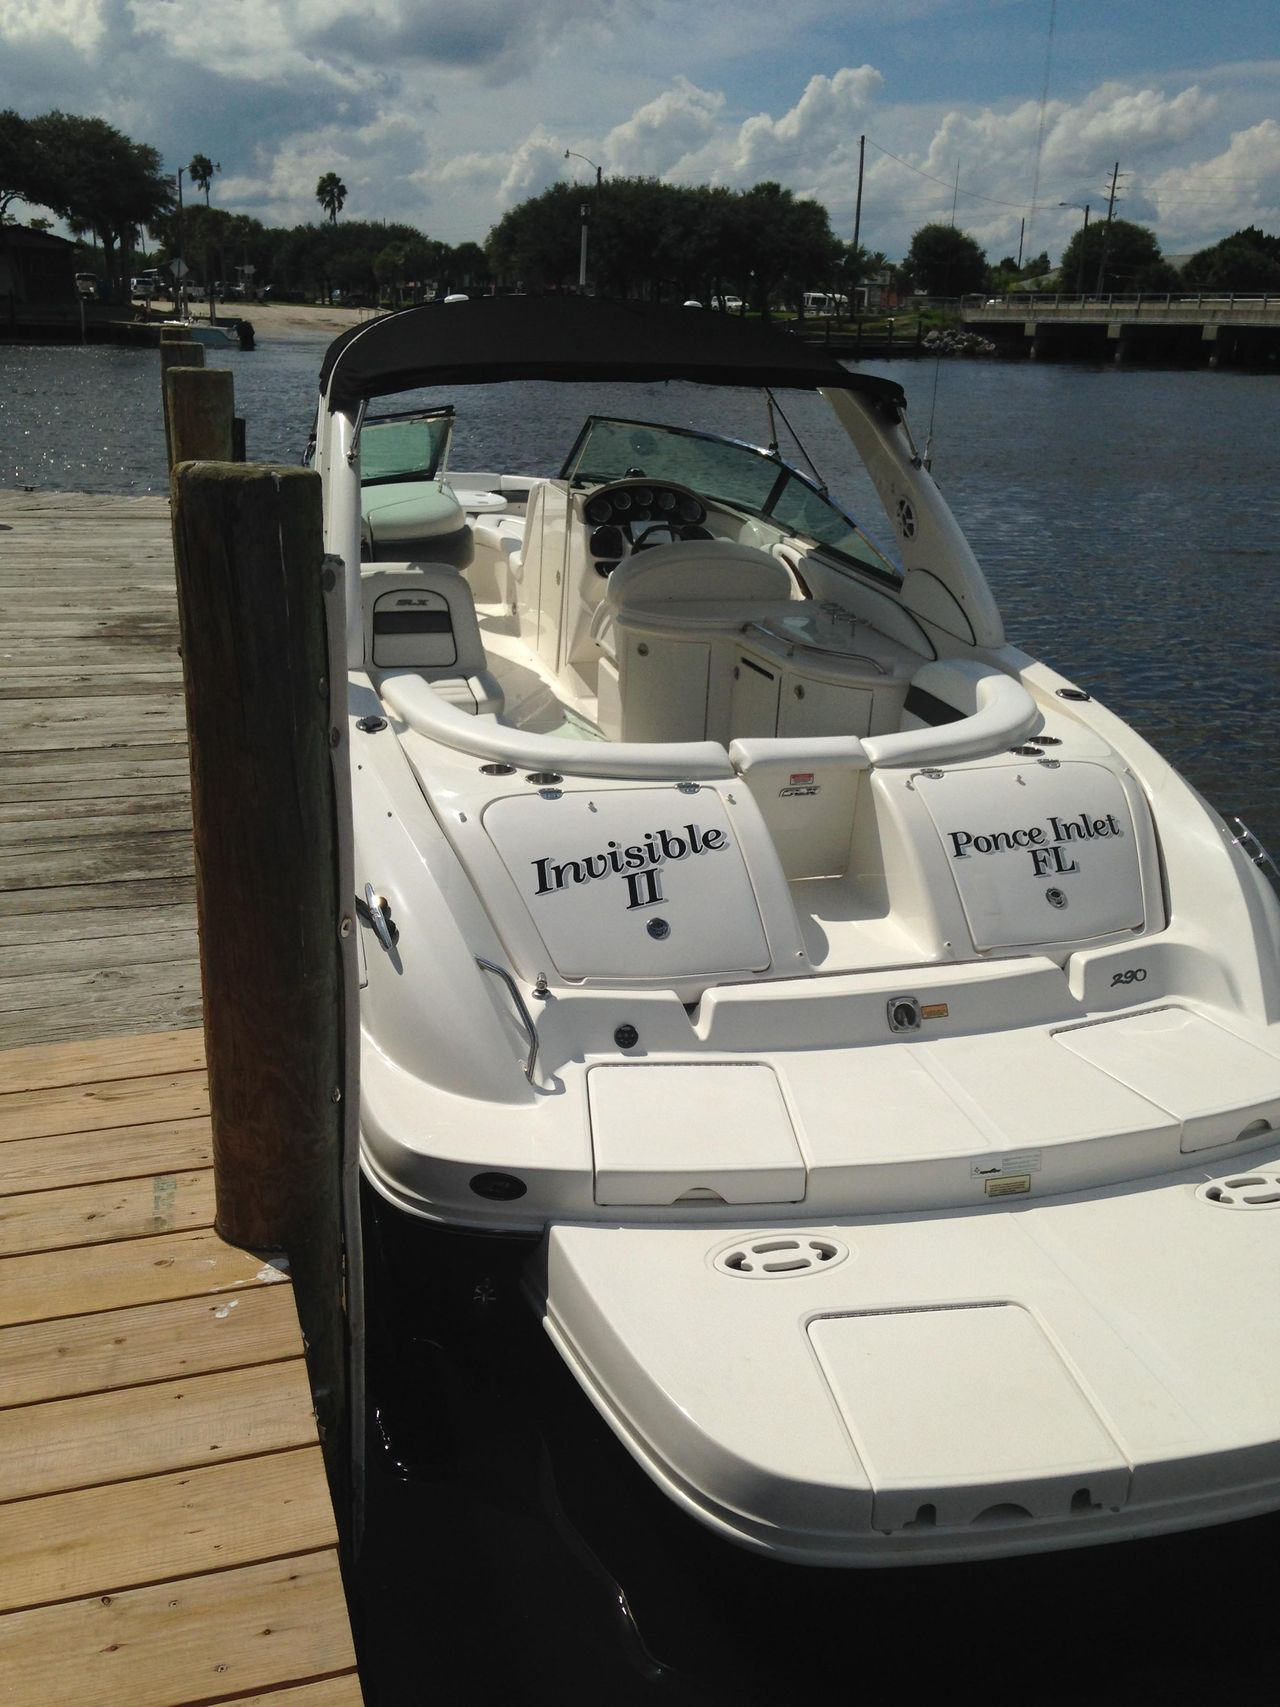 2006 Used Sea Ray 290 SLX Express Cruiser Boat For Sale - $42,900